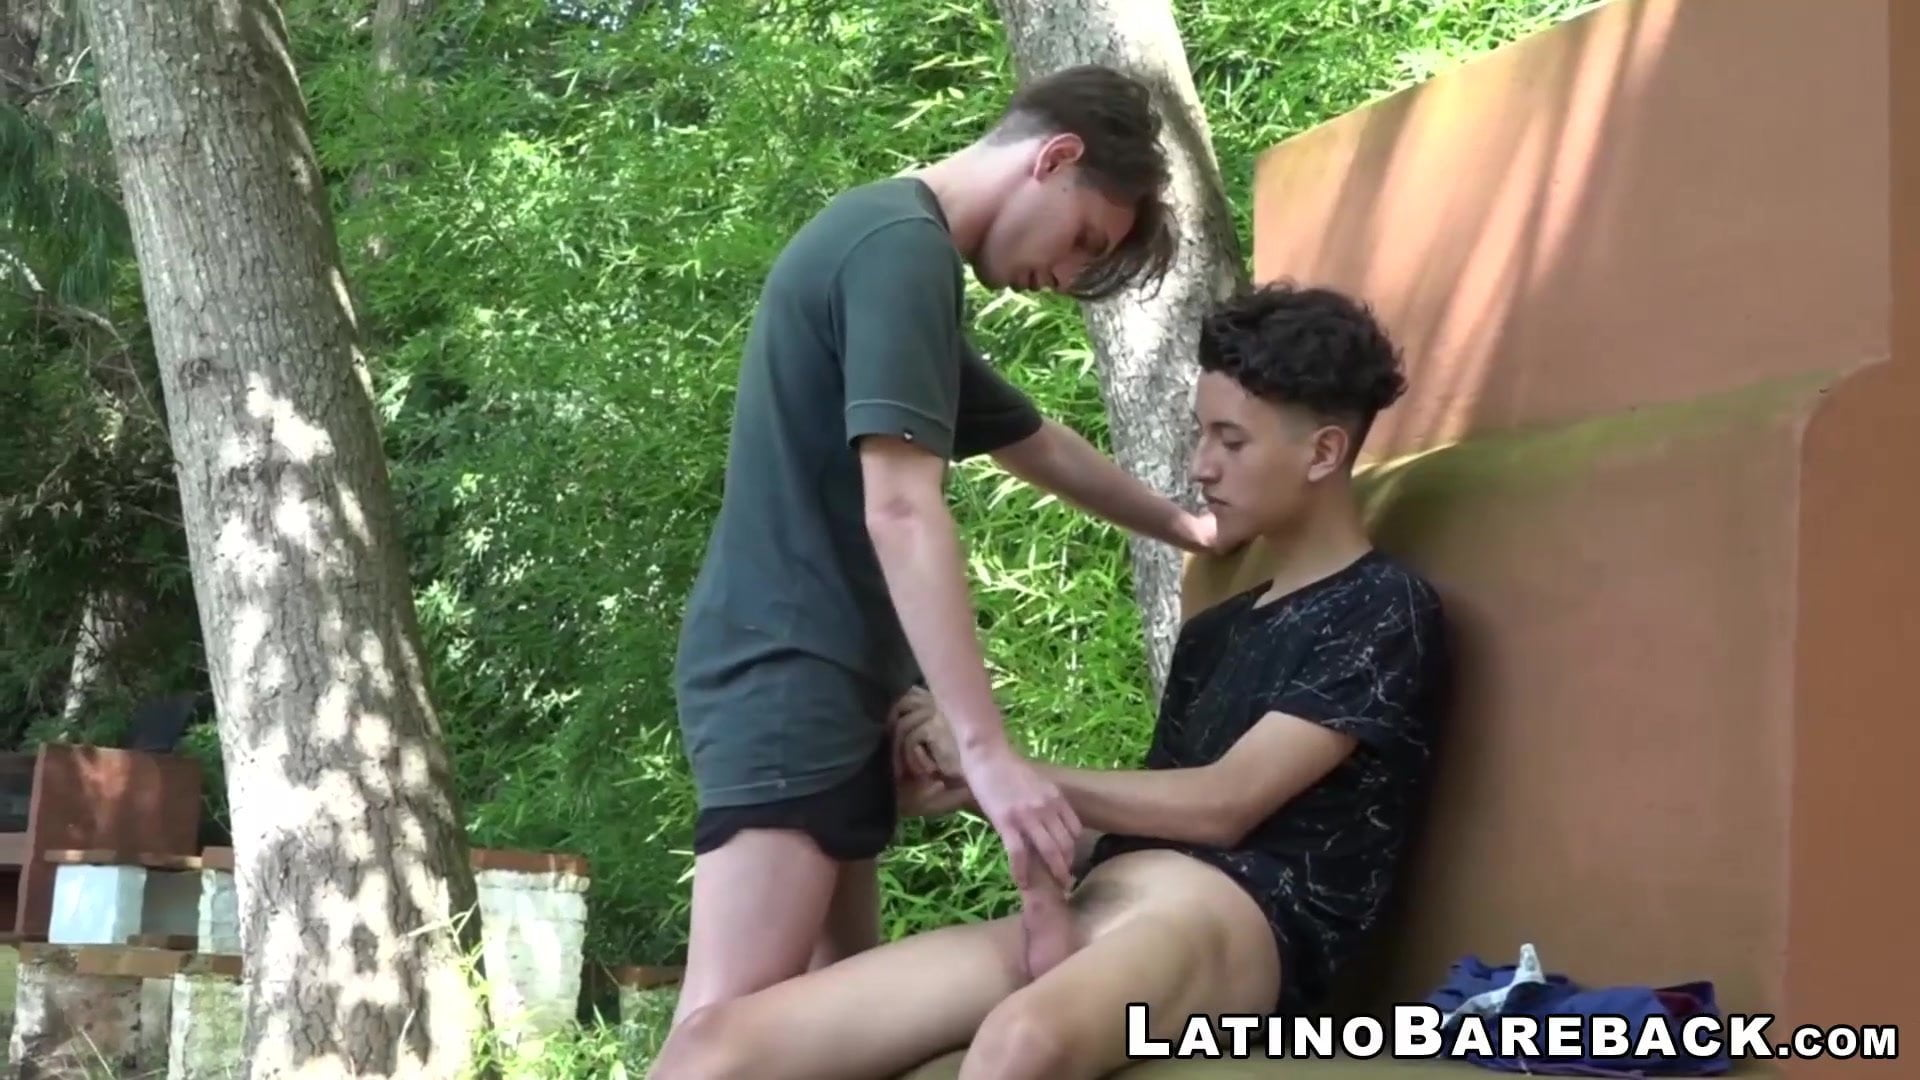 Younger latinos Wilson and Alan barebacking within the woods